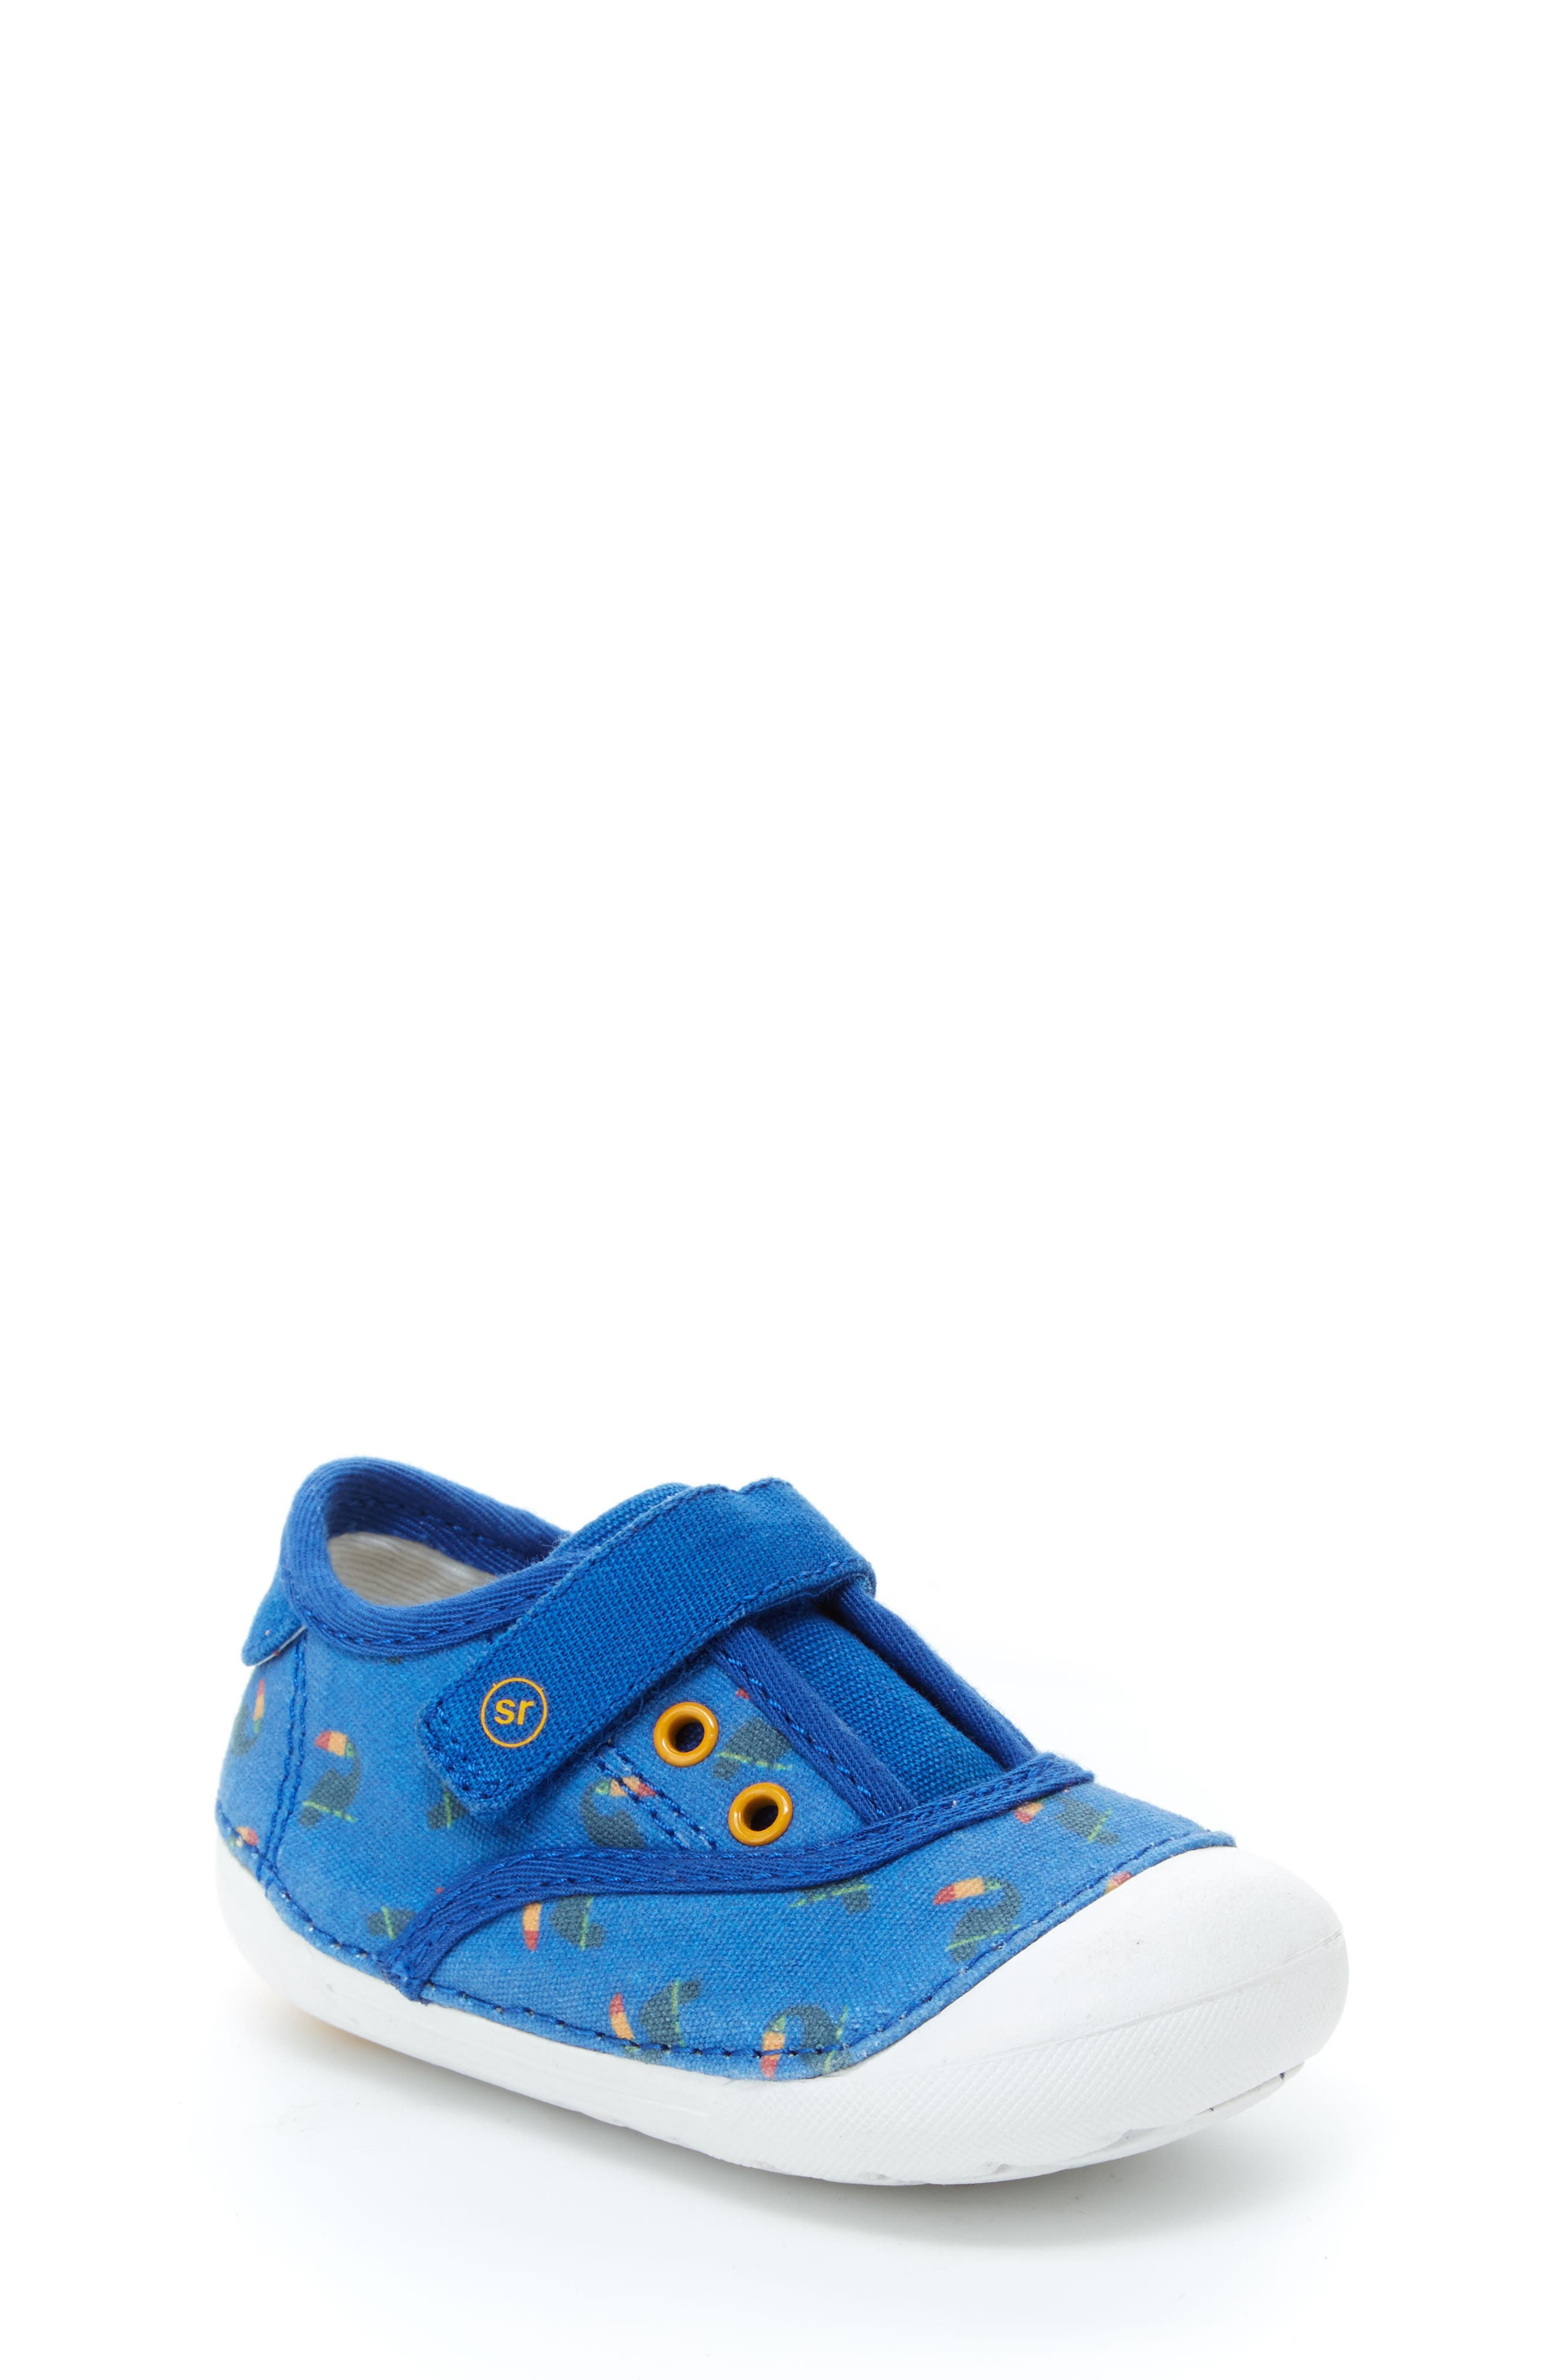 Soft Motion Avery Sneaker,                         Main,                         color, Blue Toucan